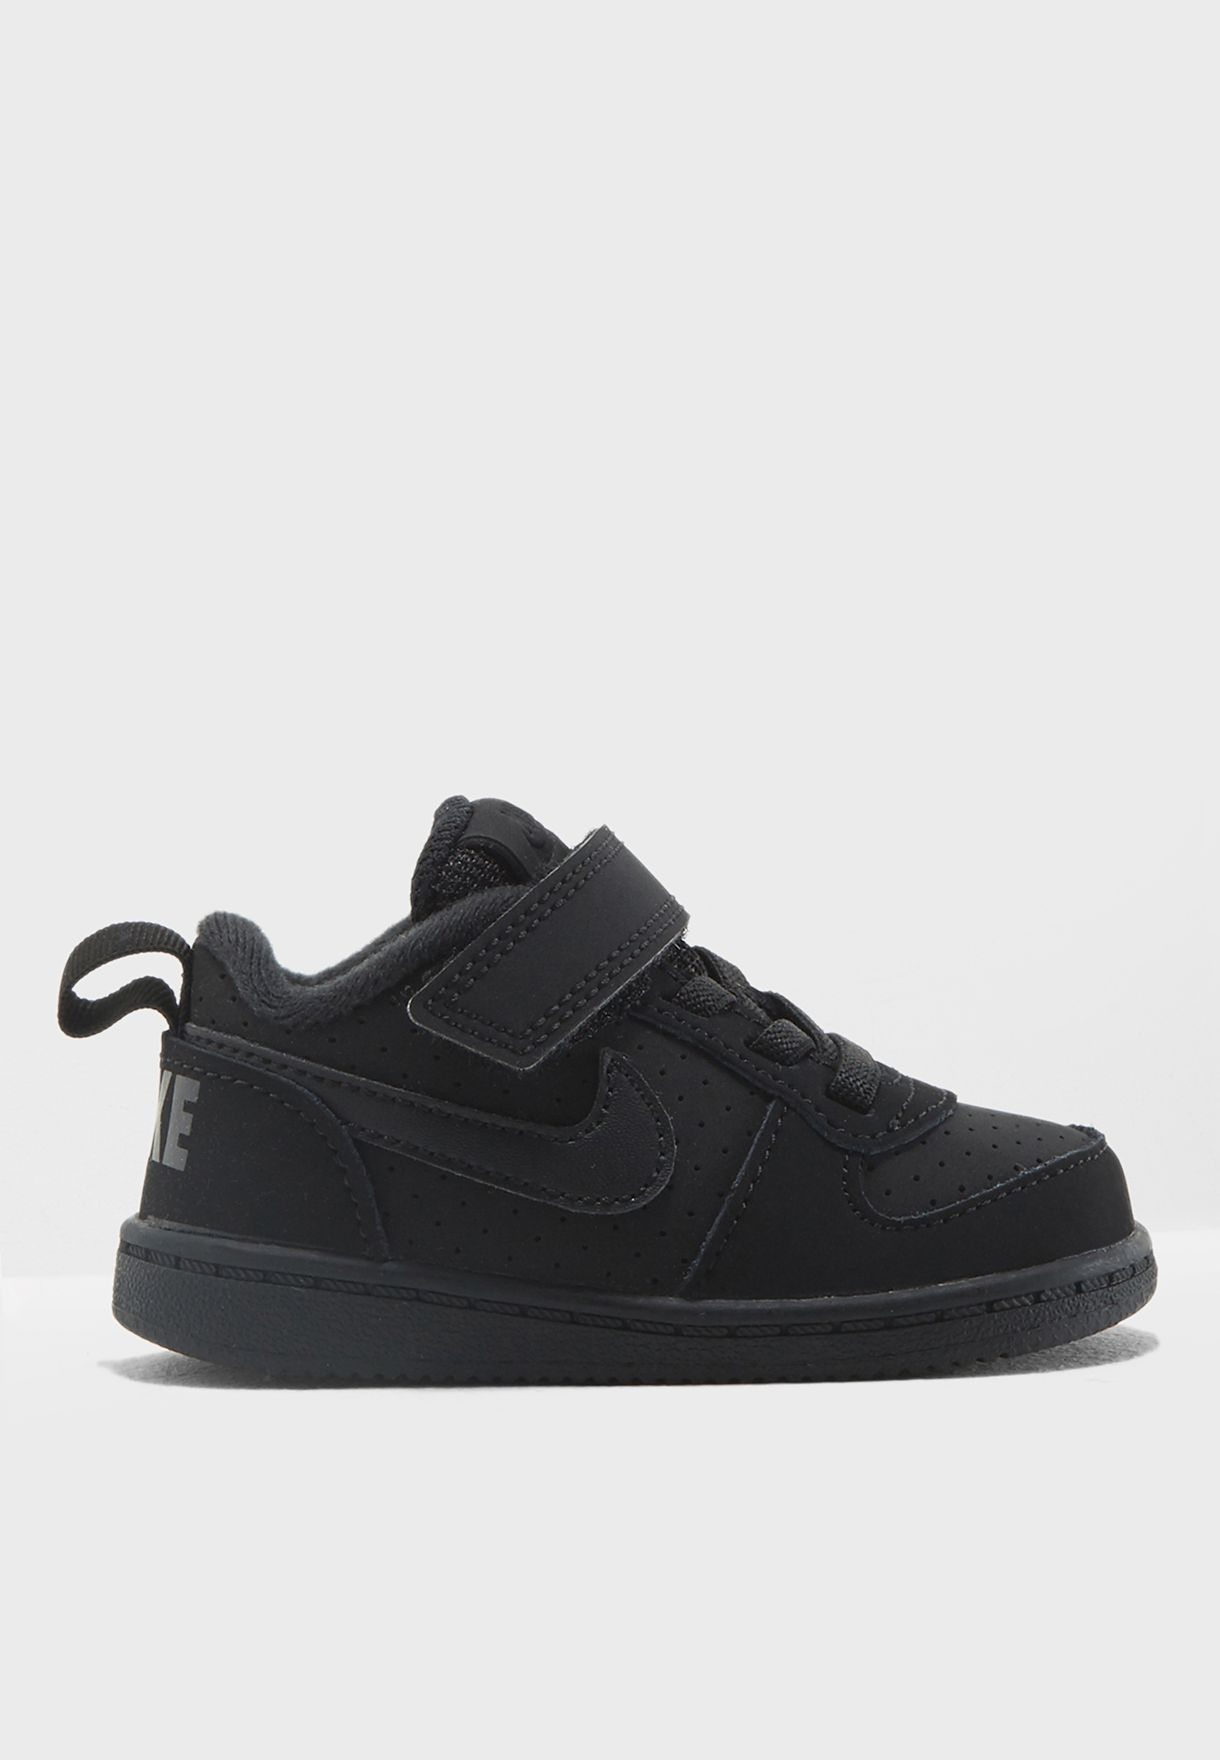 b485aa1031 Shop Nike black Infant Court Borough Low 870029-001 for Kids in ...